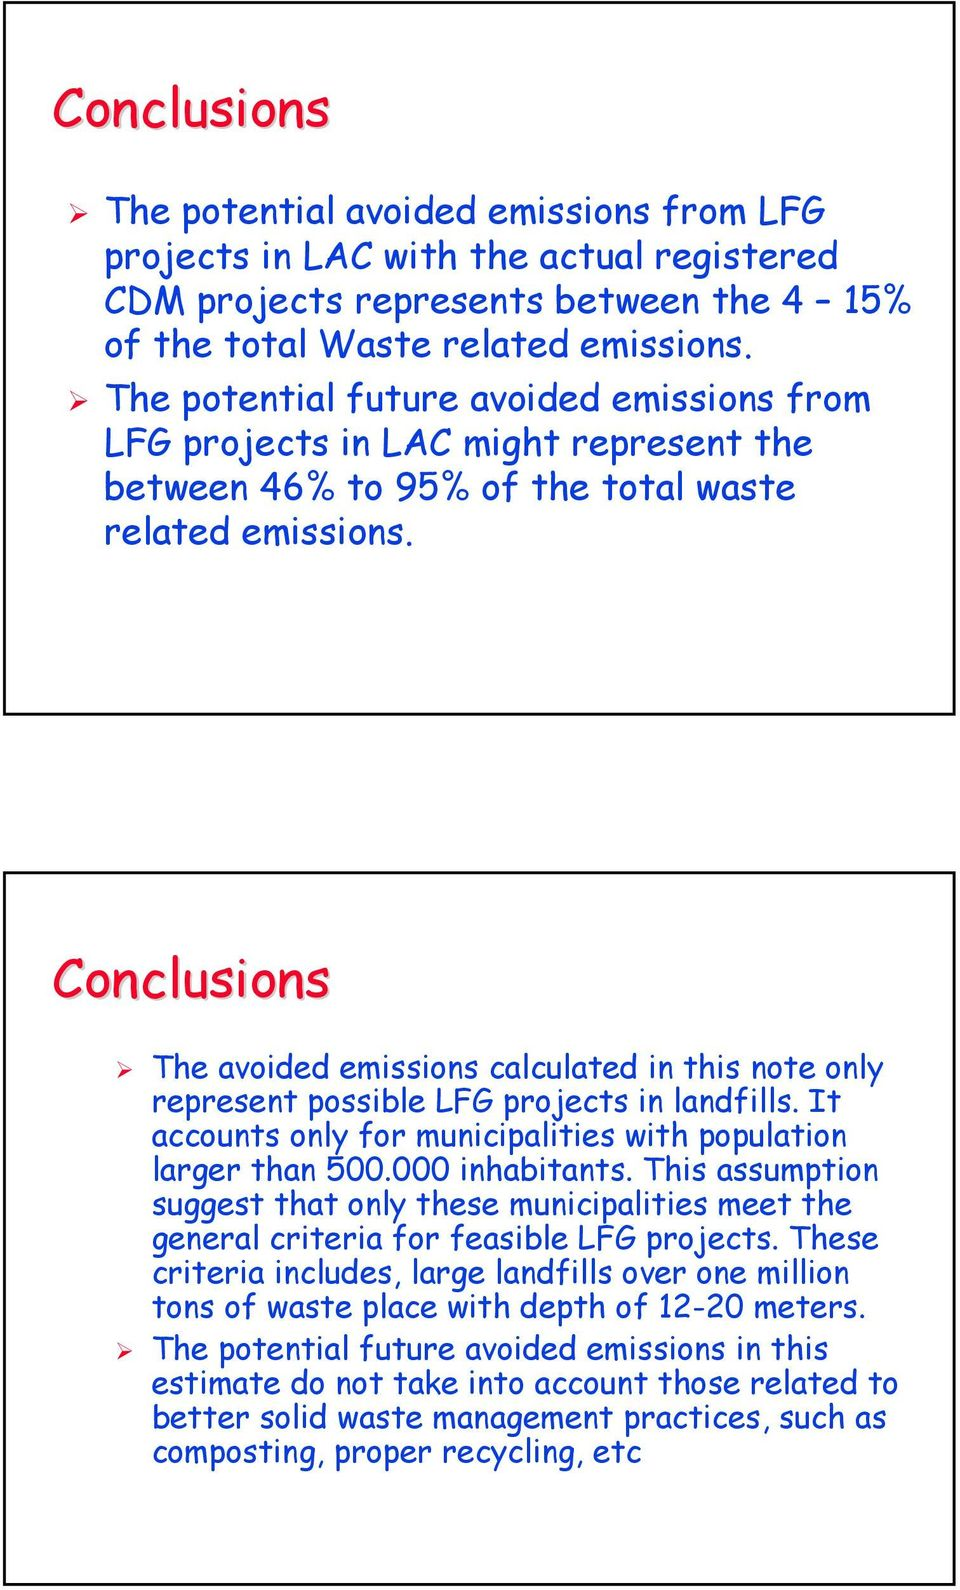 Conclusions The avoided emissions calculated in this note only represent possible LFG projects in landfills. It accounts only for municipalities with population larger than 500.000 inhabitants.